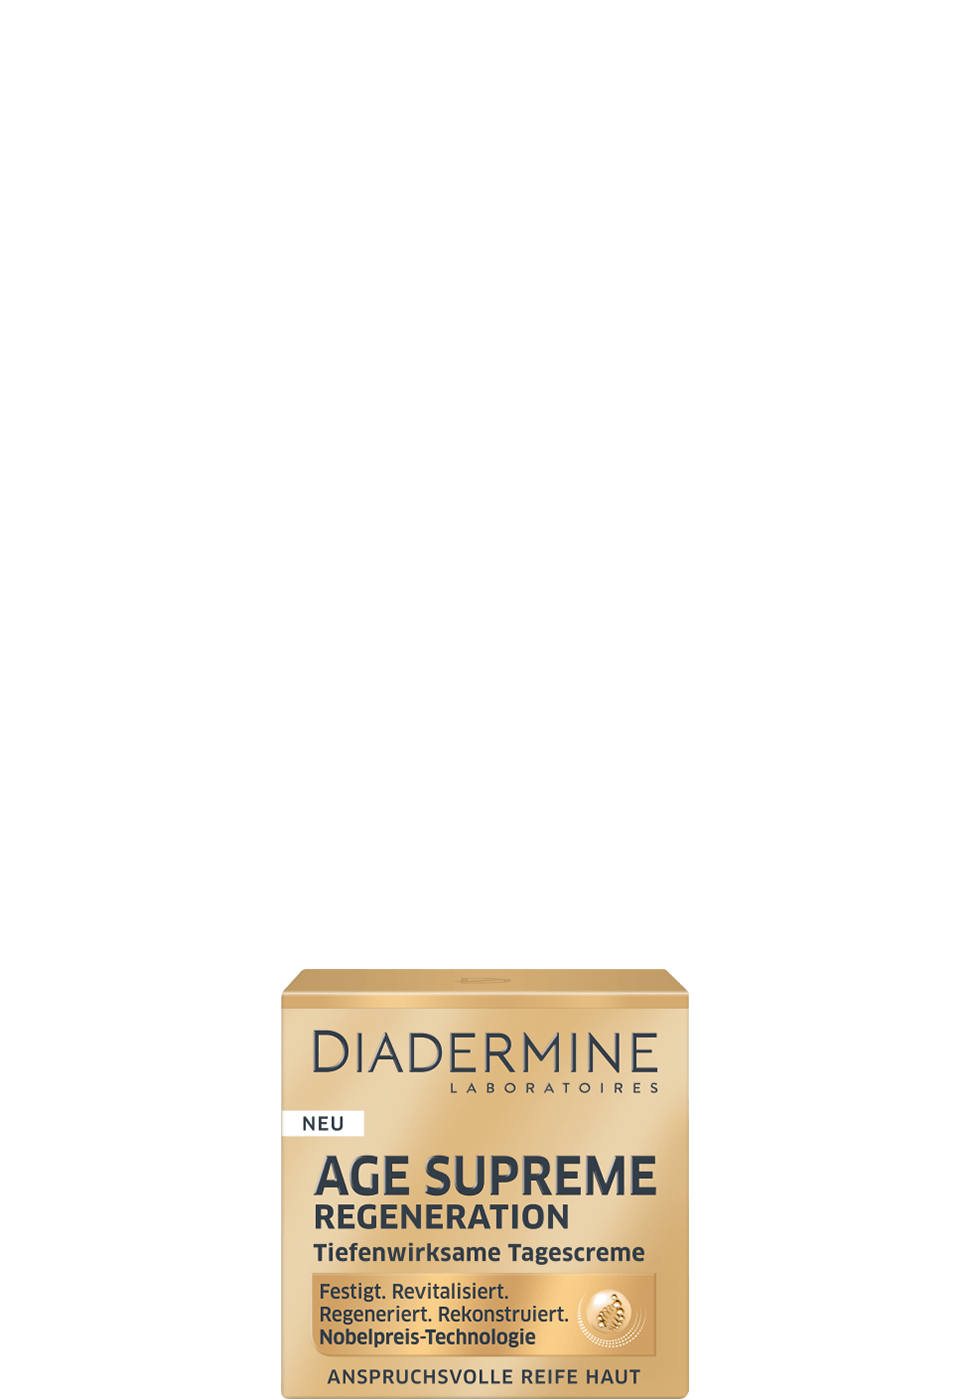 diadermine_at_age_supreme_regeneration_tagescreme_970x1400